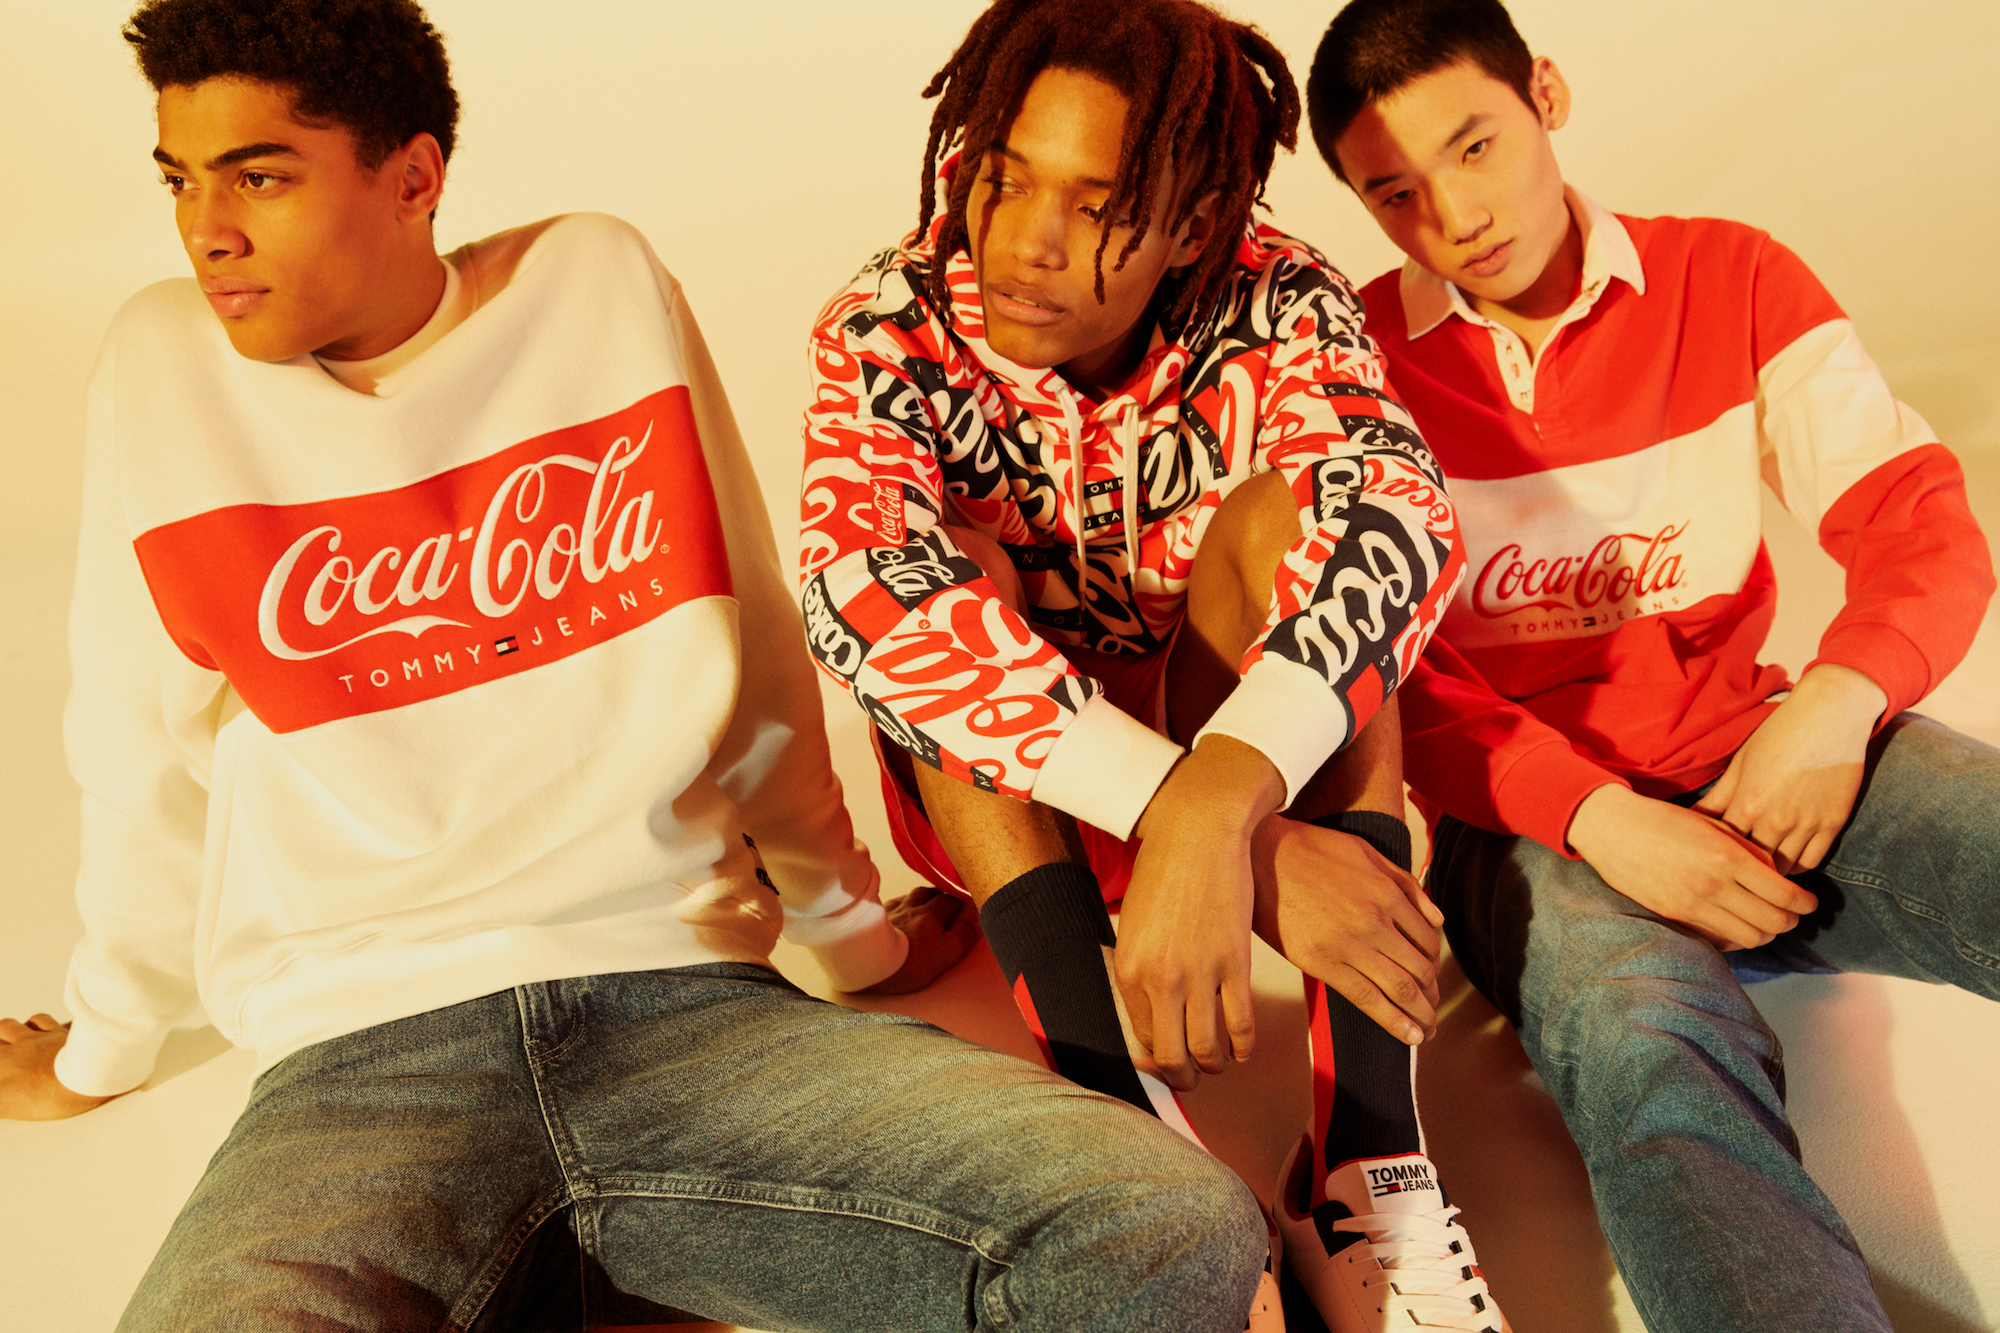 Tommy Hilfiger launches Tommy Jeans Coca-Cola collection boys group shot